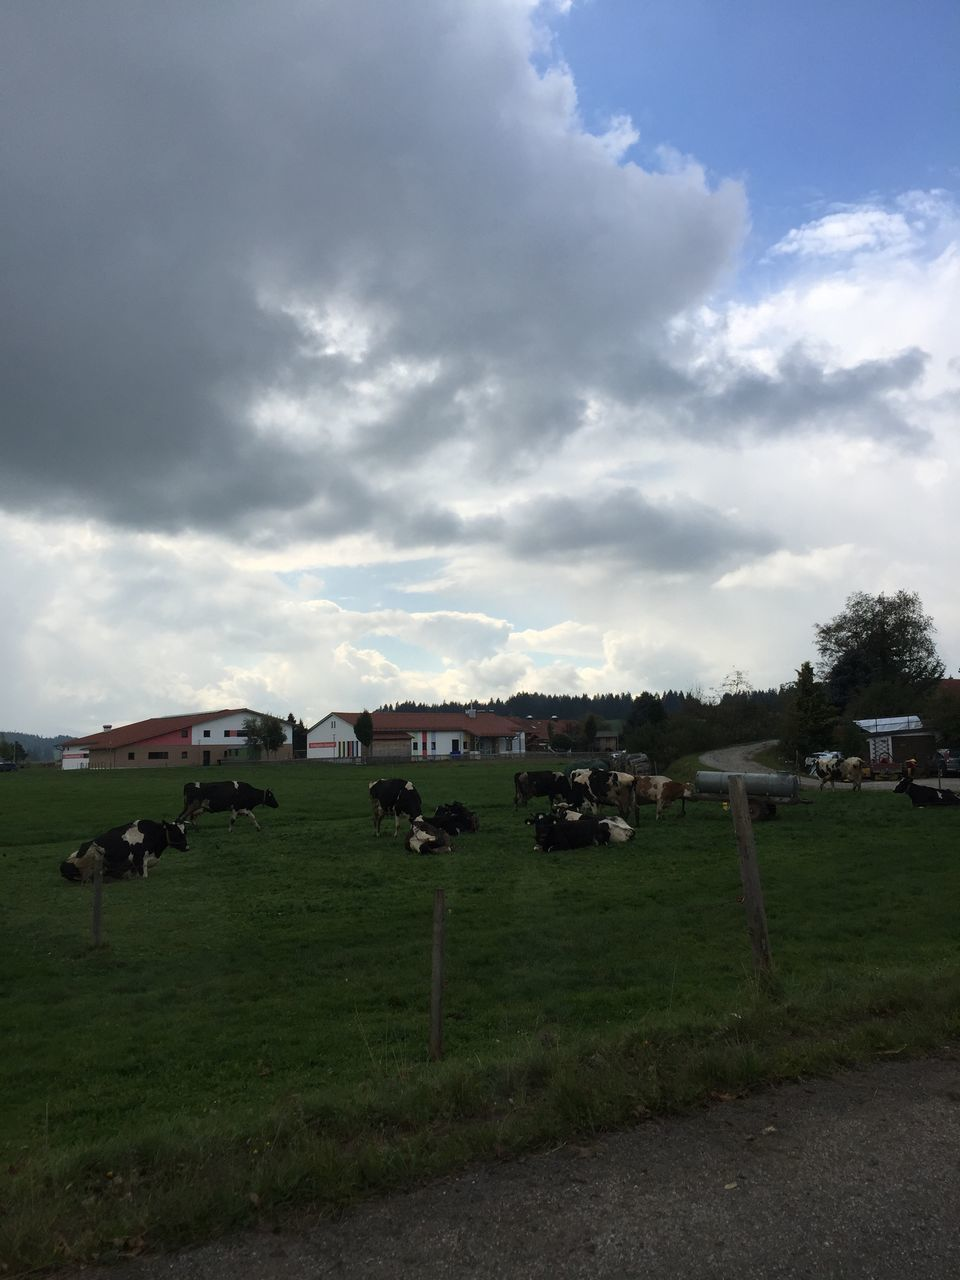 sky, landscape, field, grass, cloud - sky, cow, nature, no people, outdoors, day, architecture, scenery, tree, beauty in nature, mammal